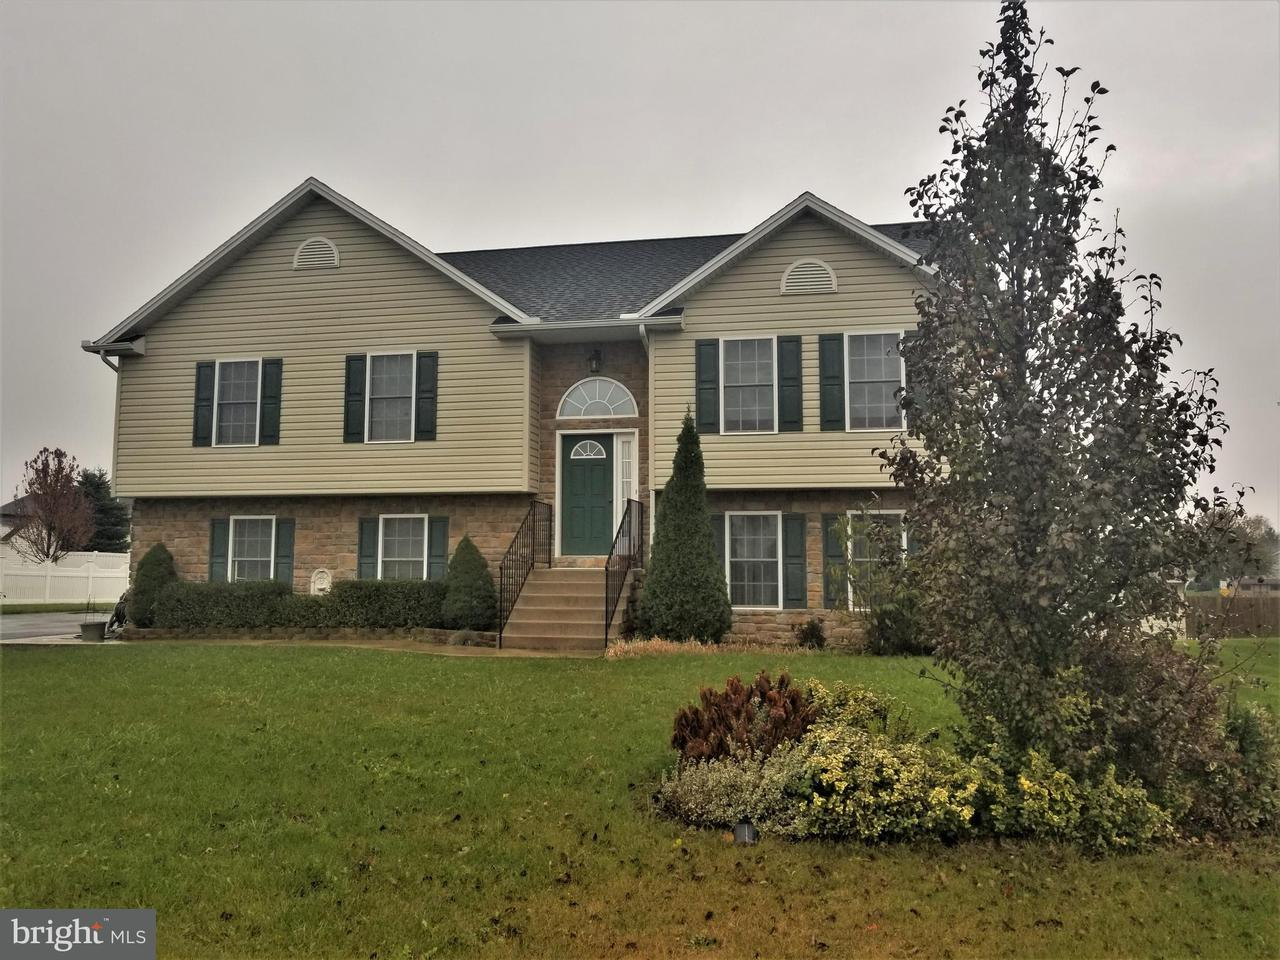 Other Residential for Rent at 125 Quentin Cir Shippensburg, Pennsylvania 17257 United States